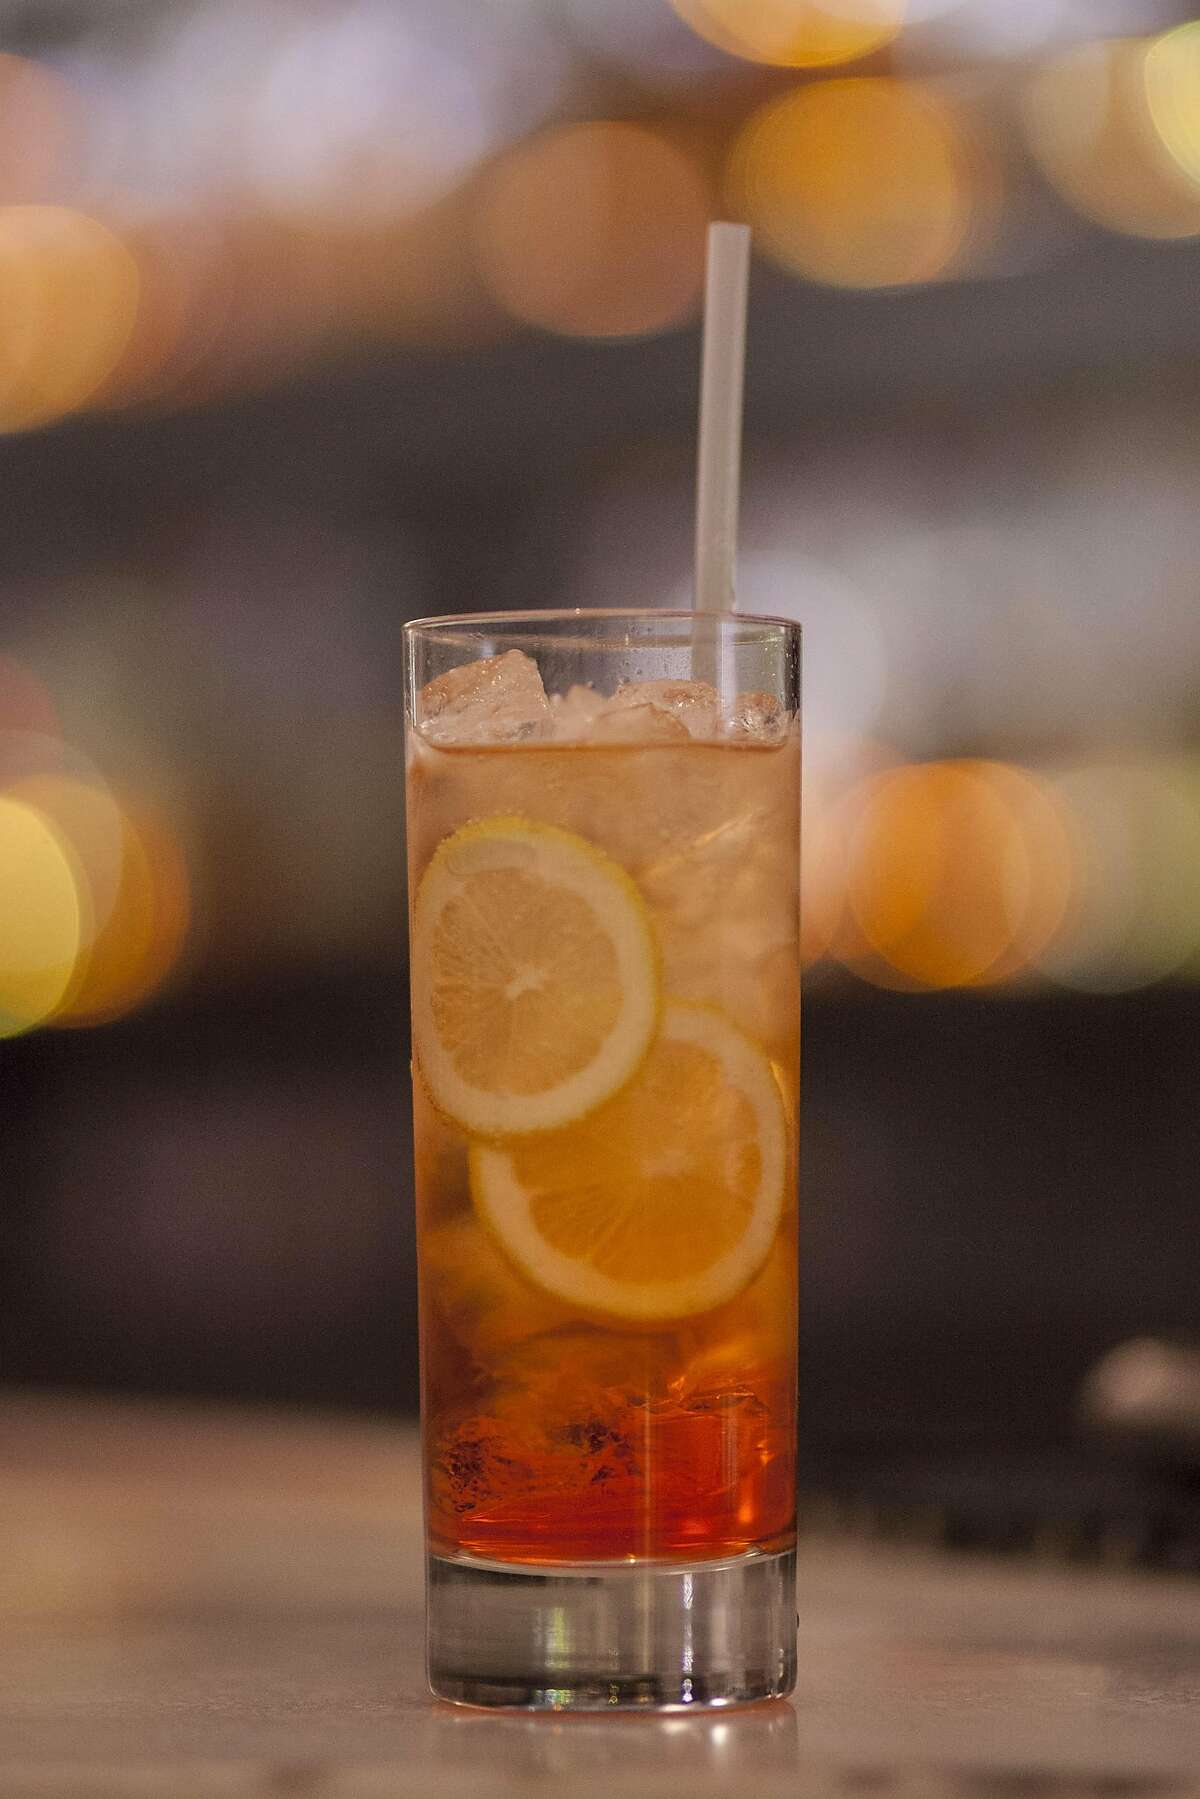 Chalkboard's happy hour drink, Aperol Spritz:aperol/prosecco/sparkling water, Thursday January, 05 2017 in Healdsburg, CA. (Peter DaSilva Special to the Chronicle)